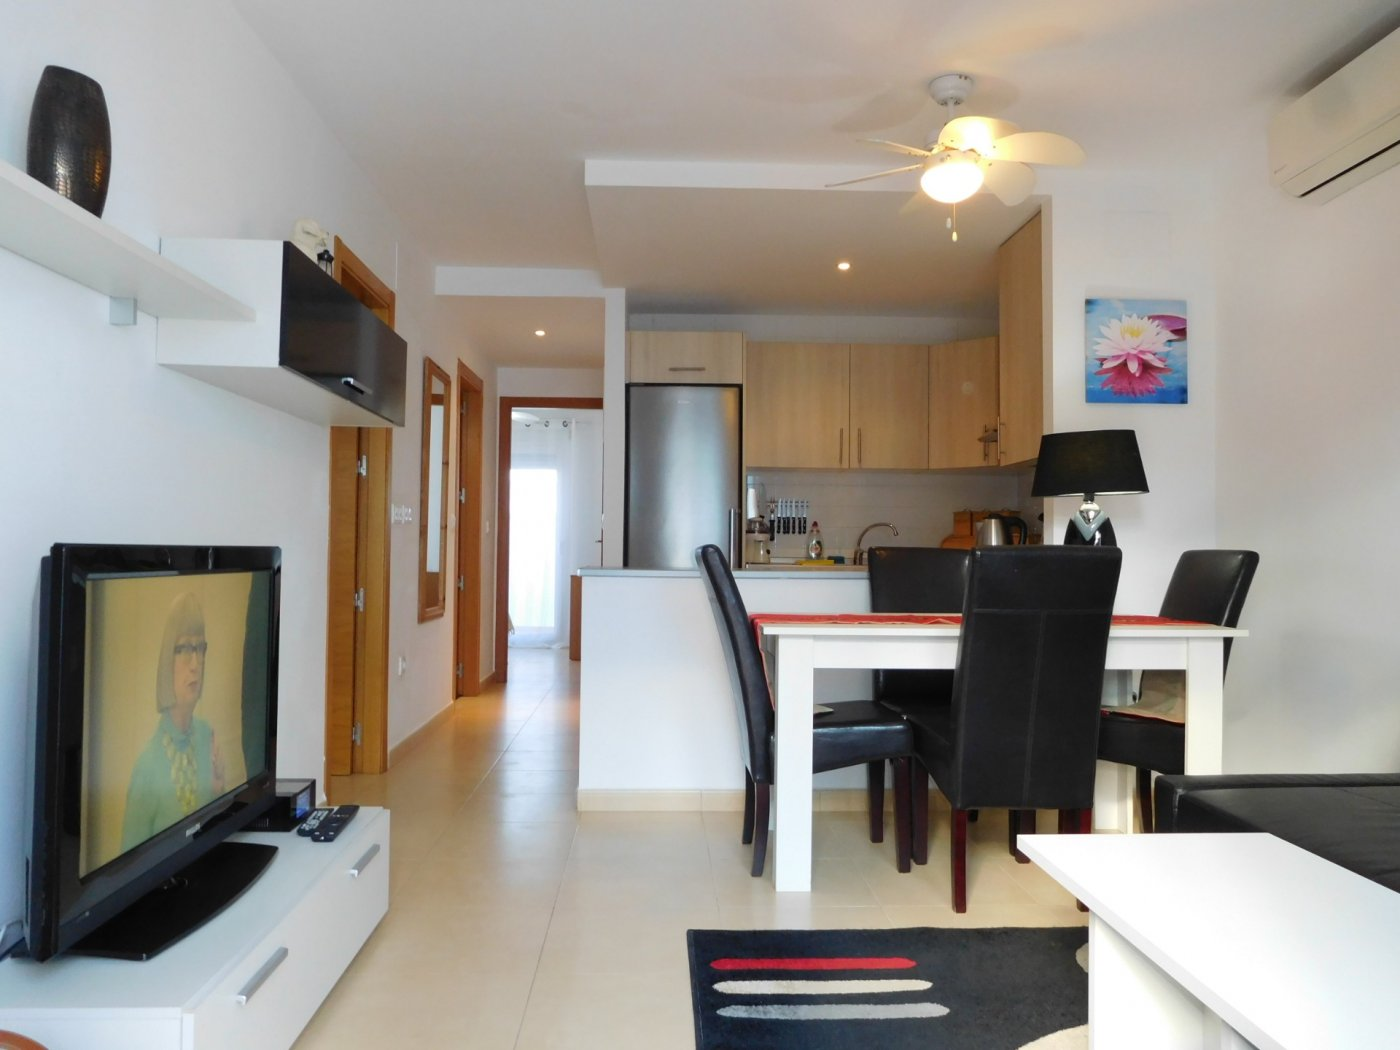 Gallery Image 4 of Flat For rent in Condado De Alhama, Alhama De Murcia With Pool